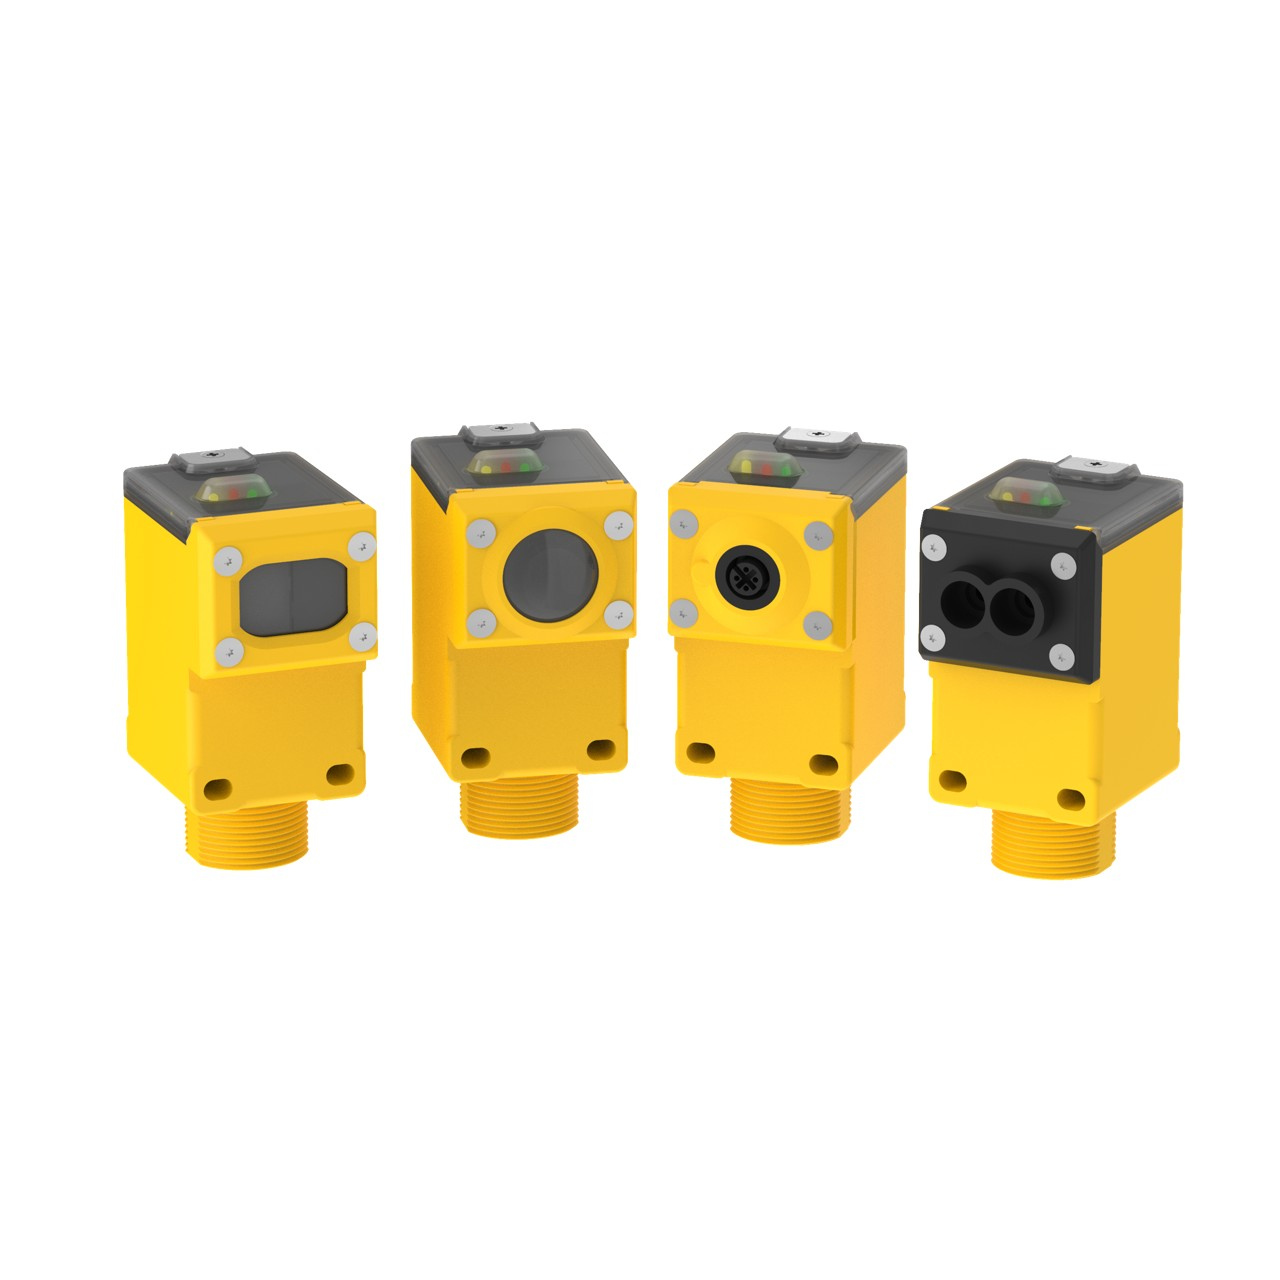 Kaman Automation q45 wireless sensors img png